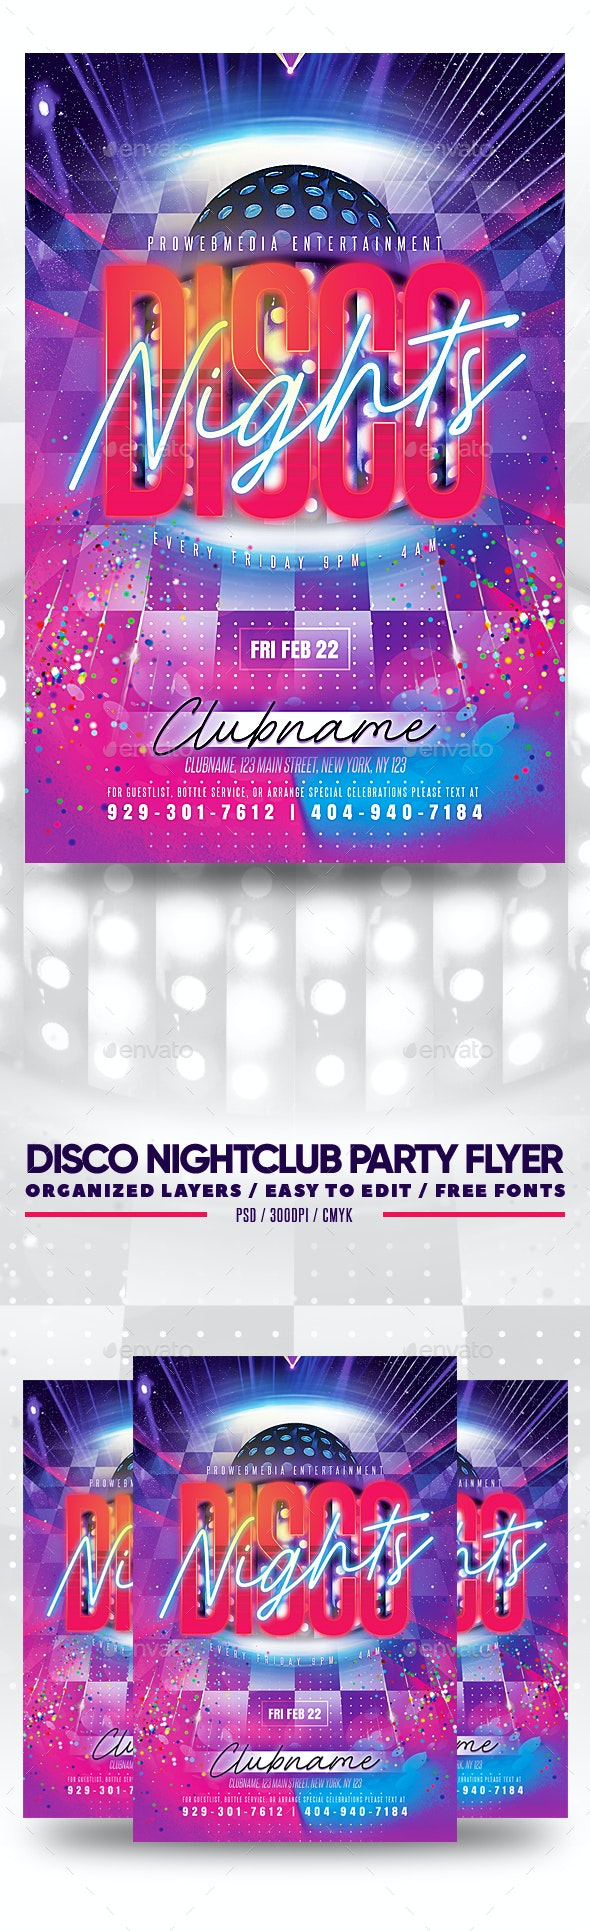 Disco Nightclub Party Flyer - Clubs & Parties Events